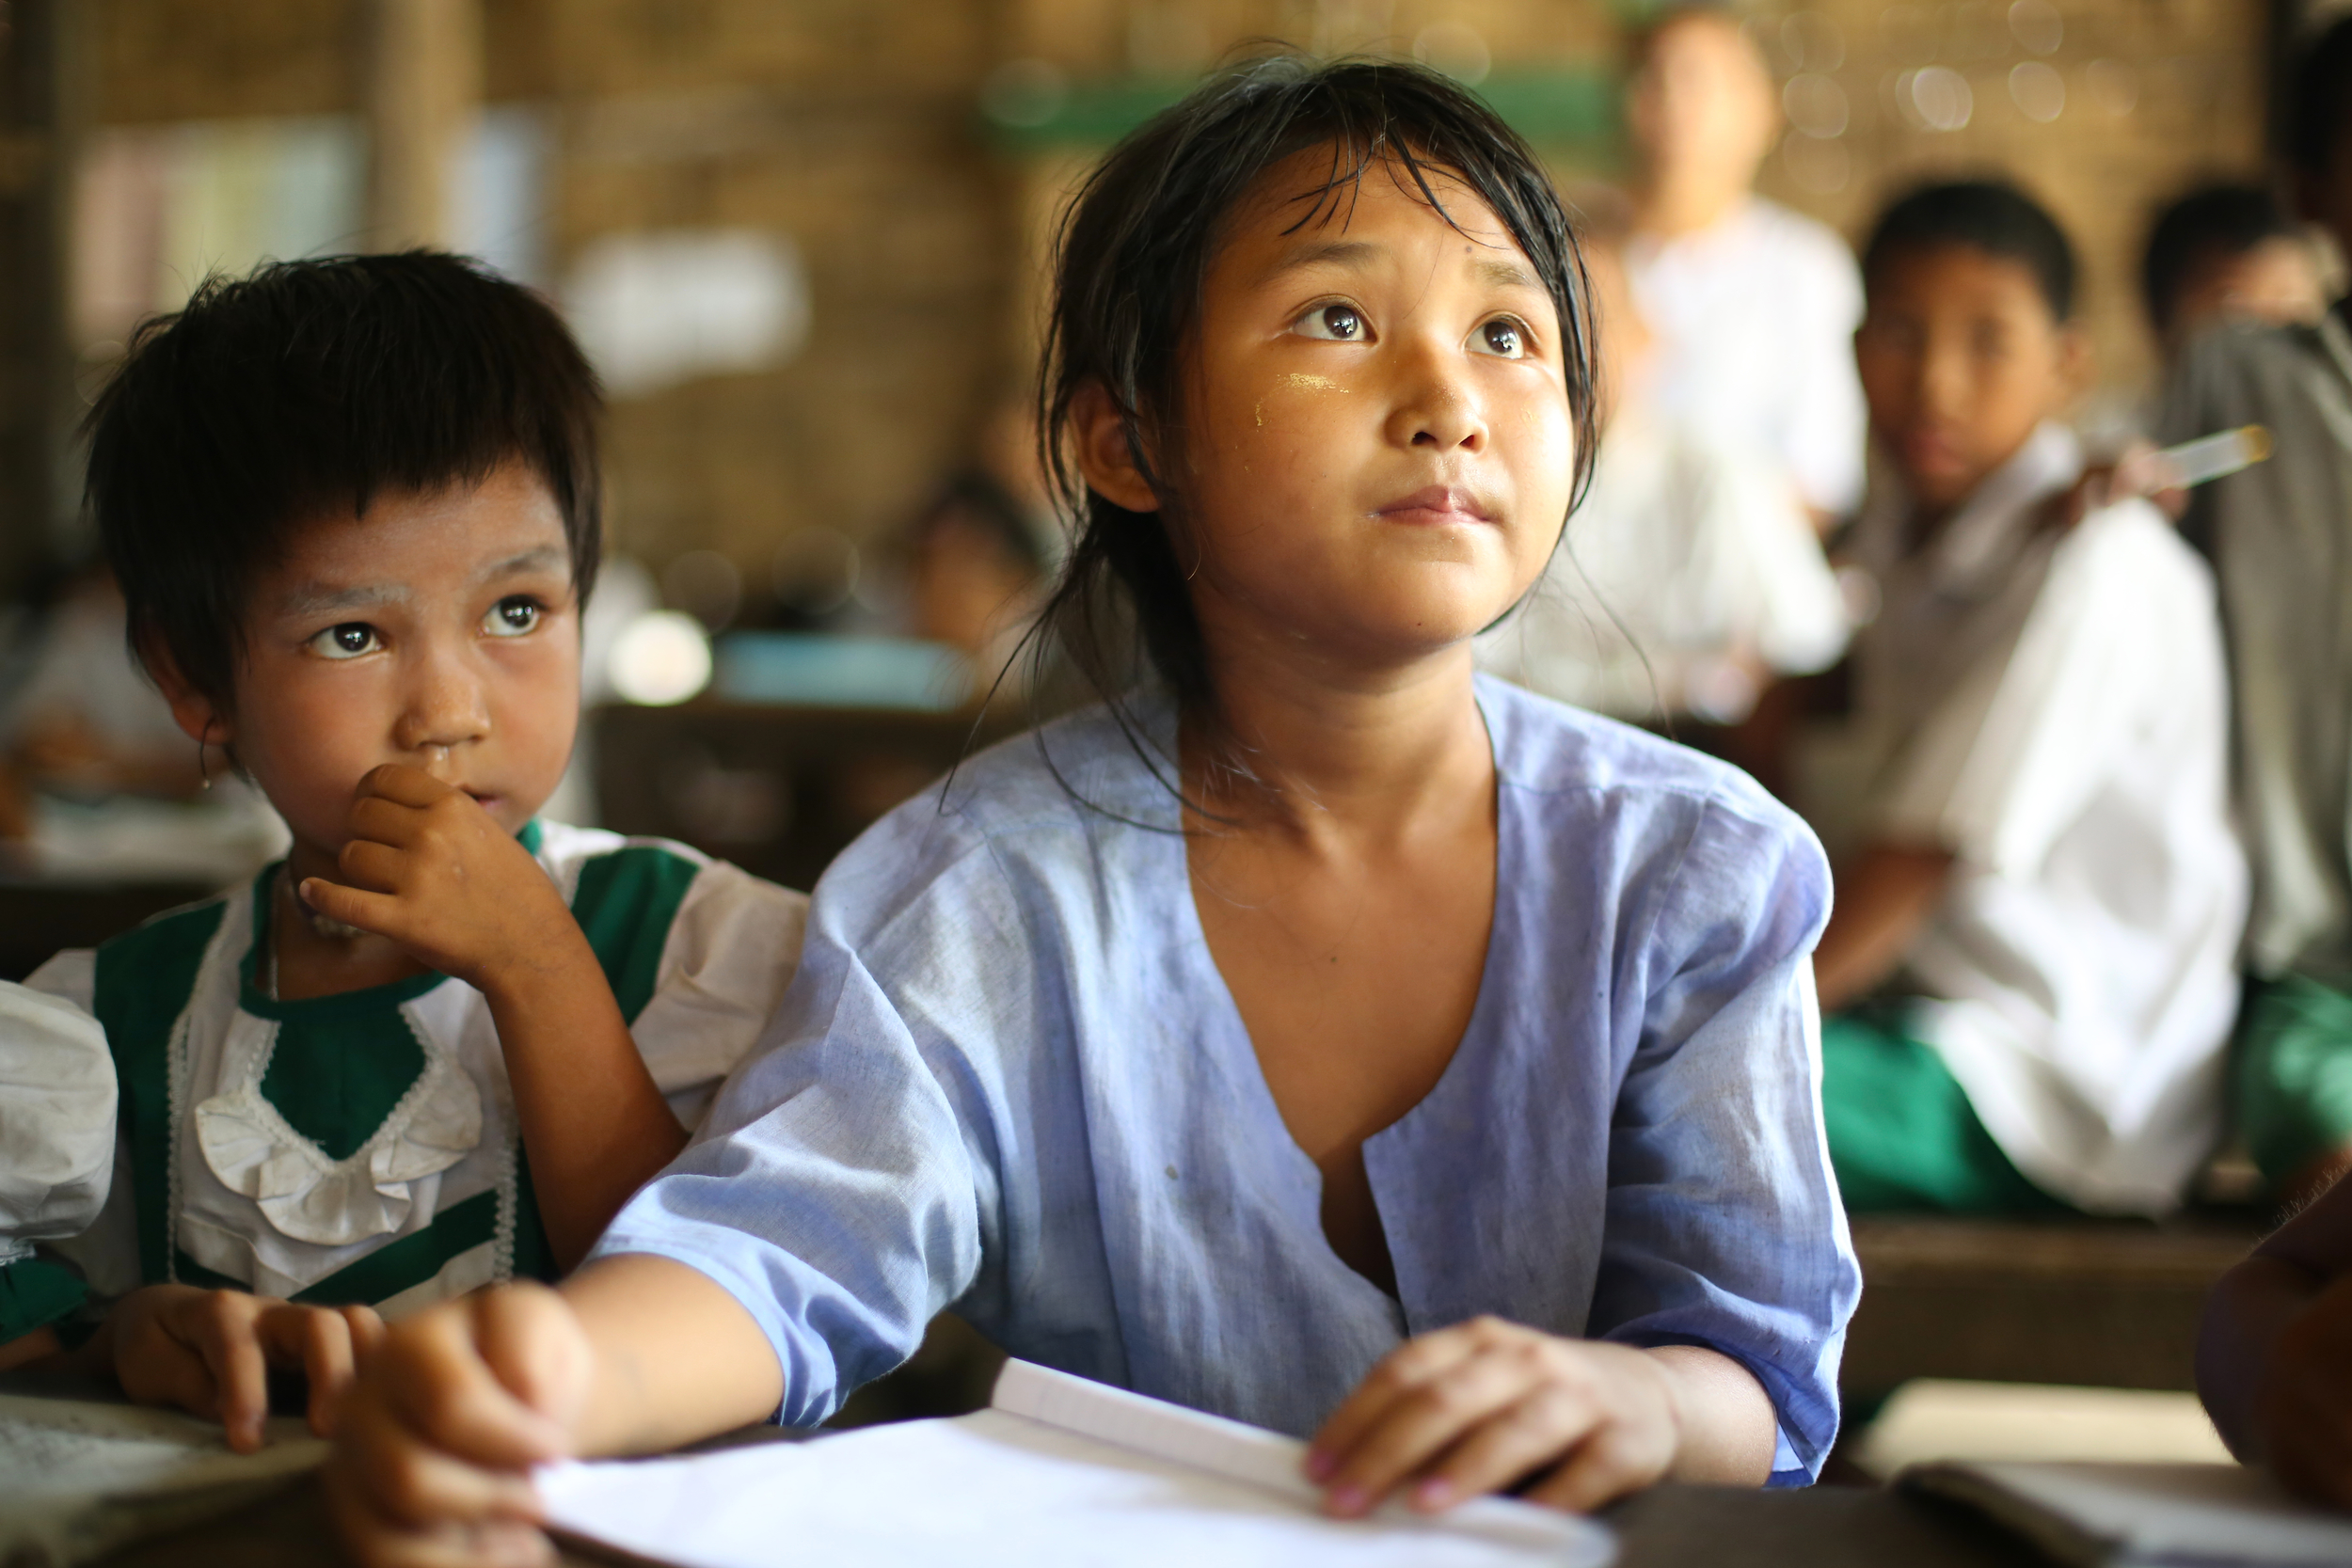 Access to education is still a struggle for thousands of girls in Myanmar